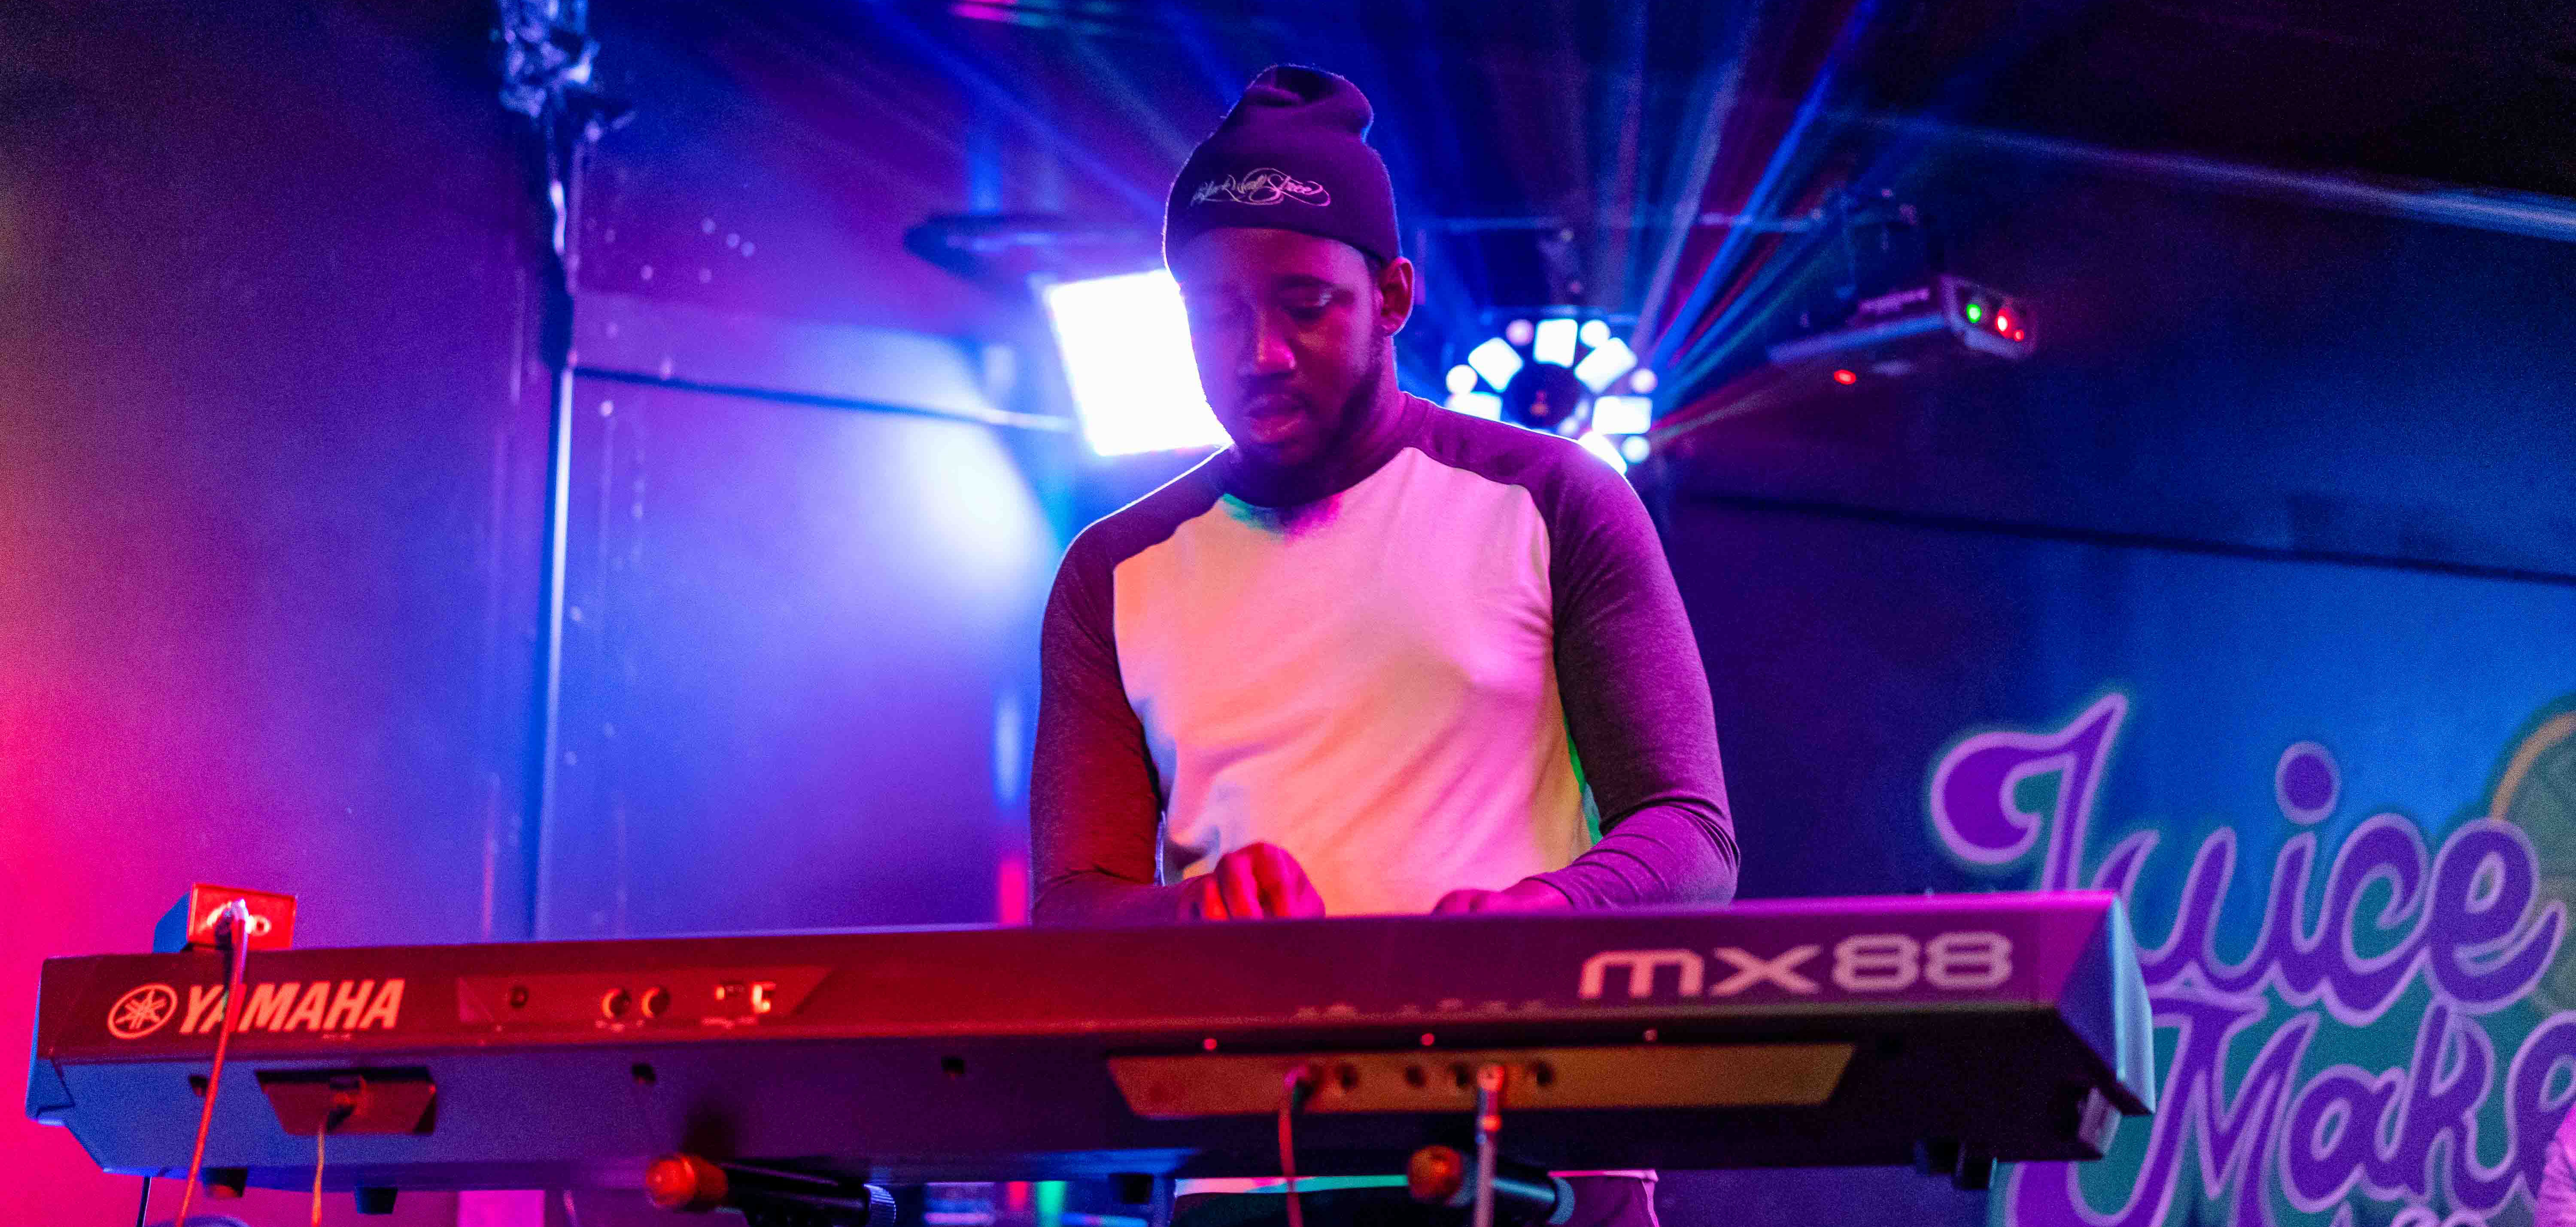 The keyboardist from Stanley Fonka and the New Chocolate Factory plays at Juicemaker Lounge in East Tulsa.